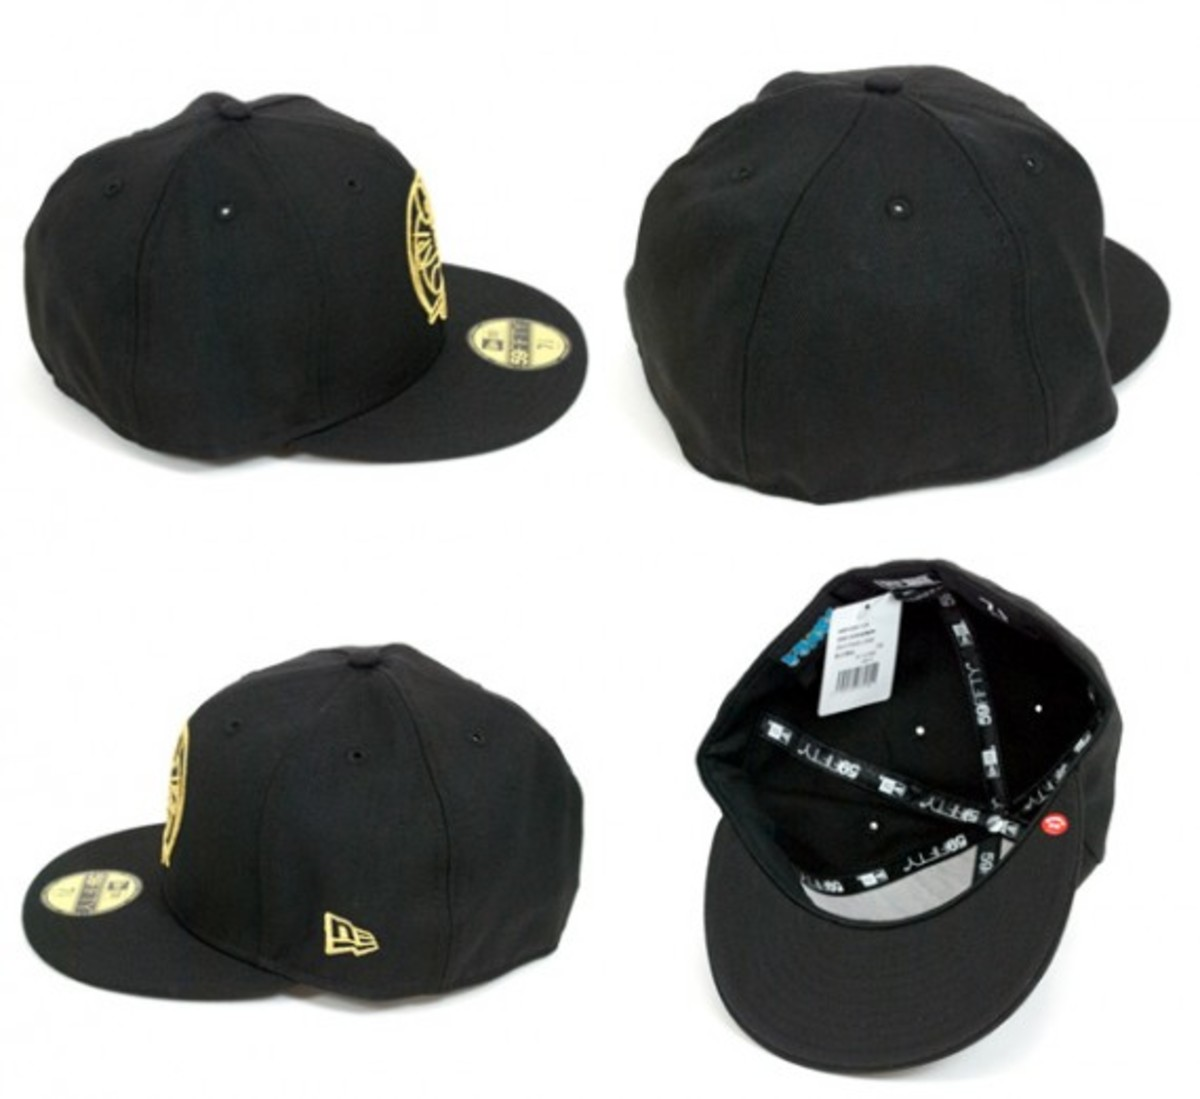 new-era-doraemon-cap-collection-05